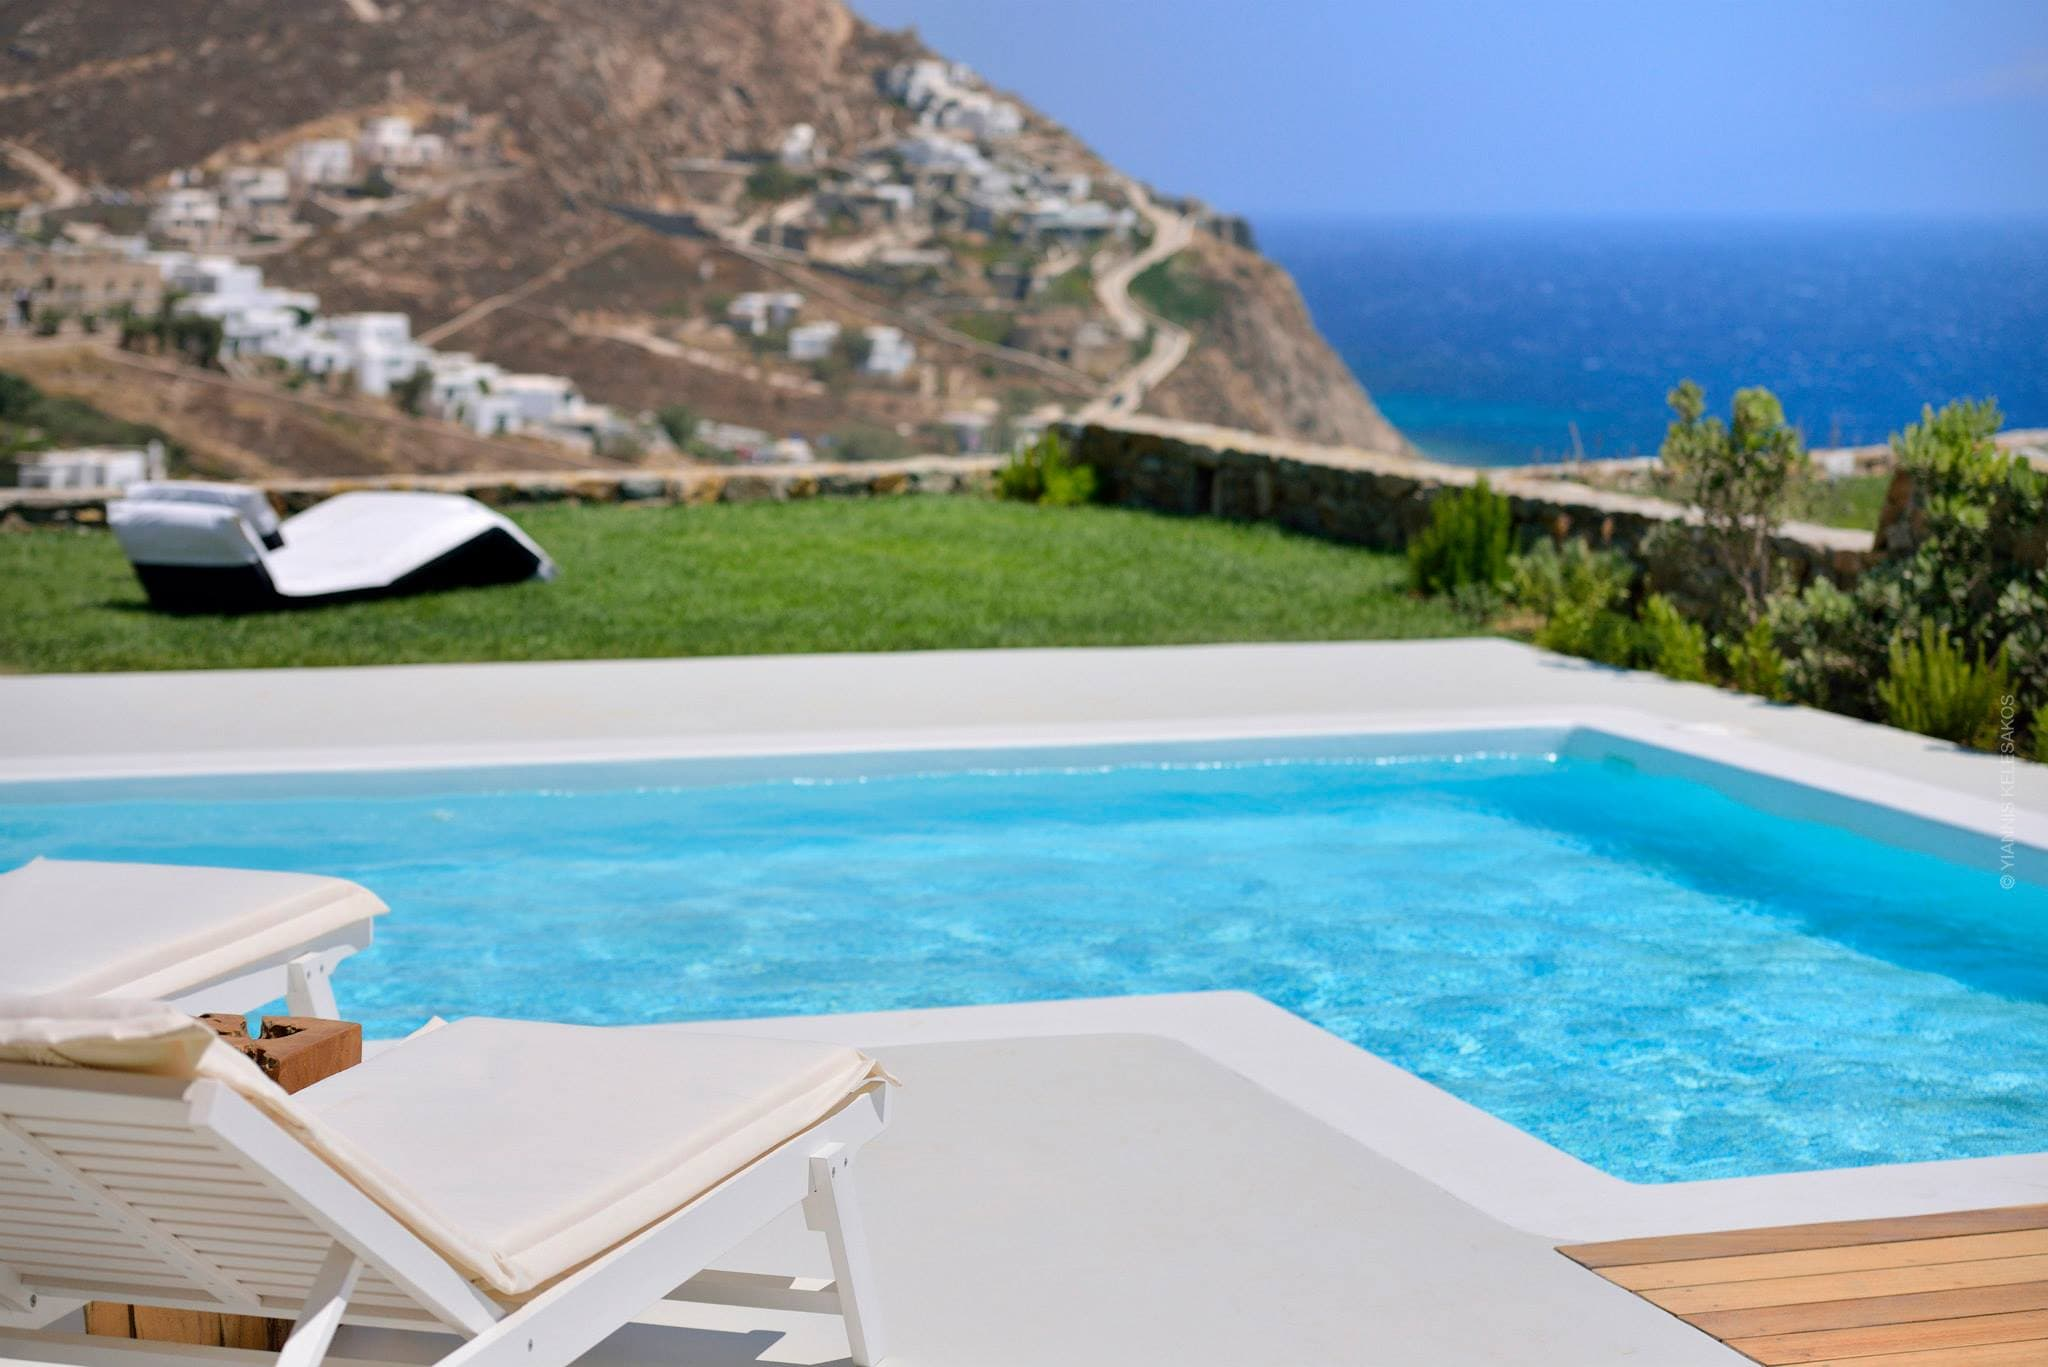 Property Image 2 - Modern Greek Villa with Private pool and Outdoor heated jacuzzi